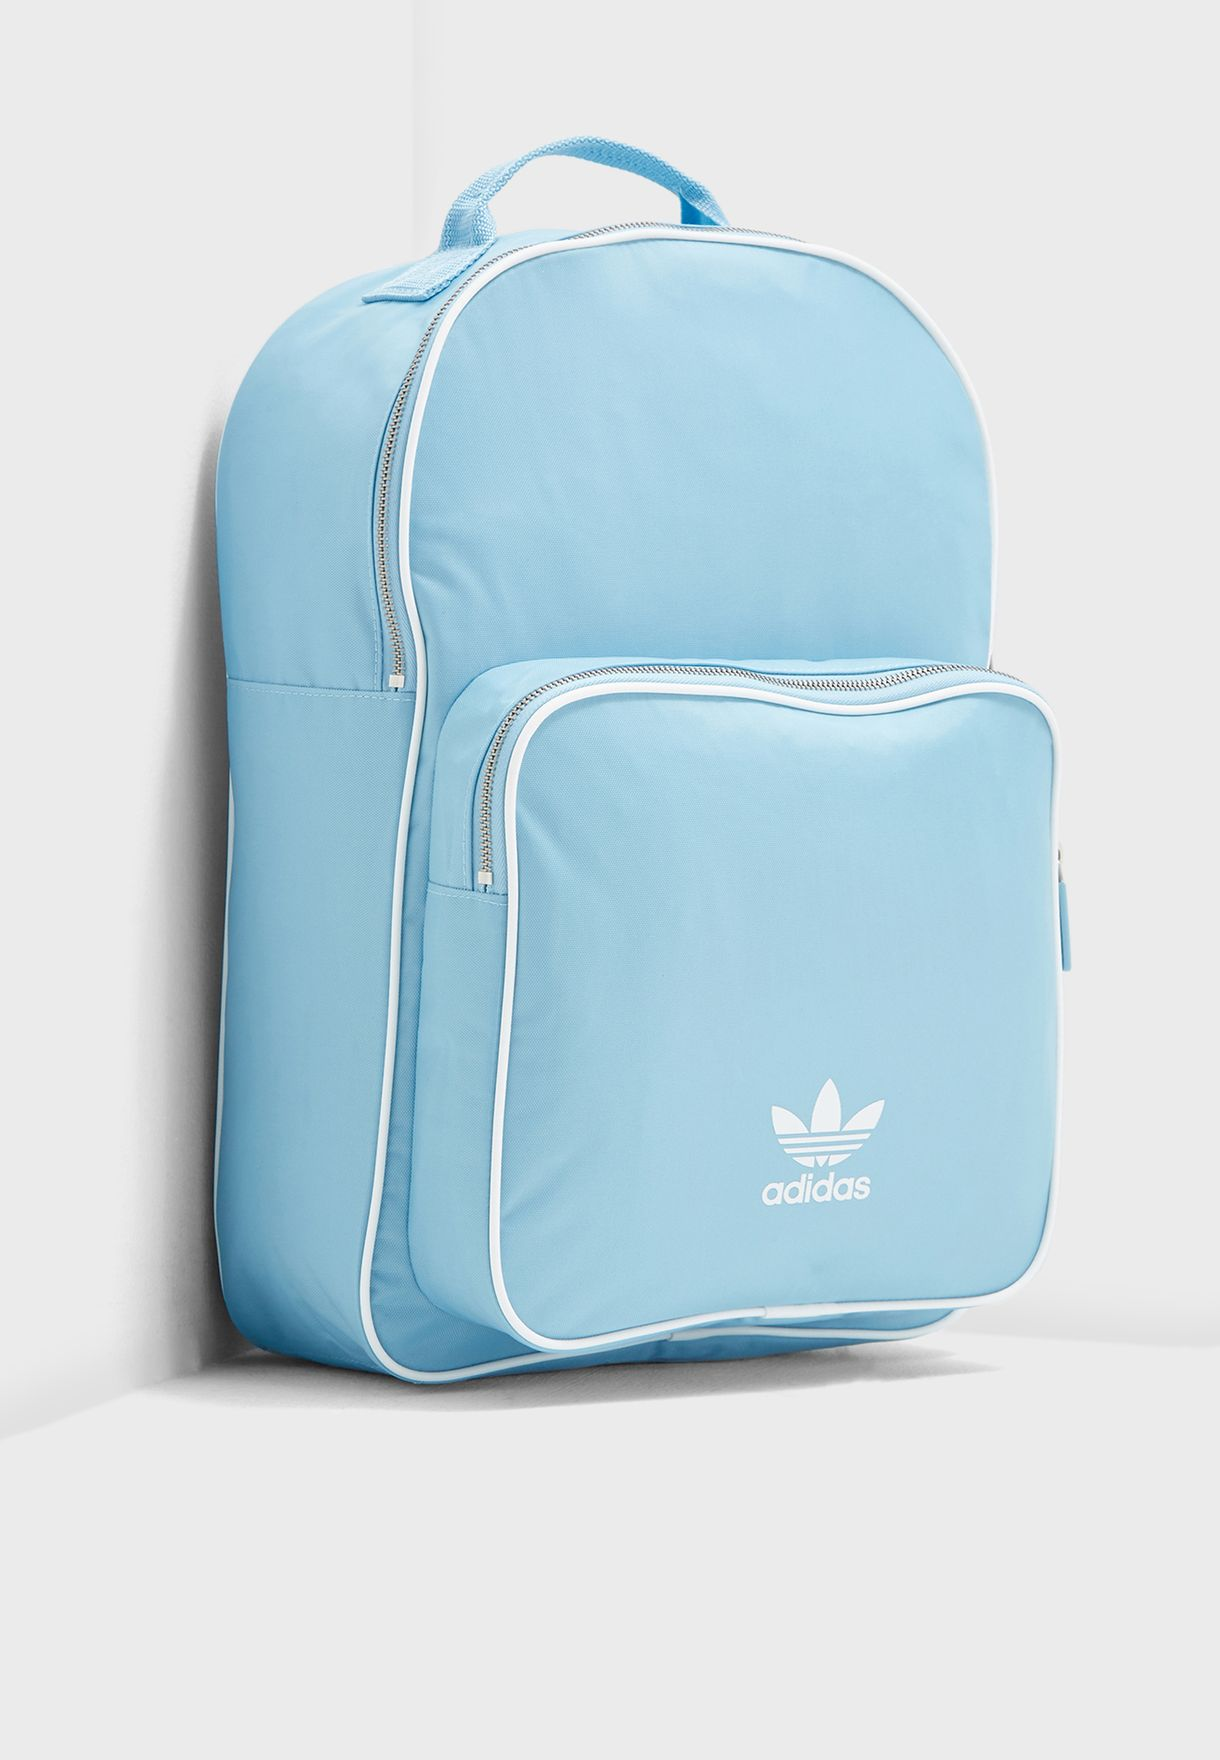 ac31b823a66 Shop adidas Originals blue adicolor Classic Backpack DJ0880 for ...